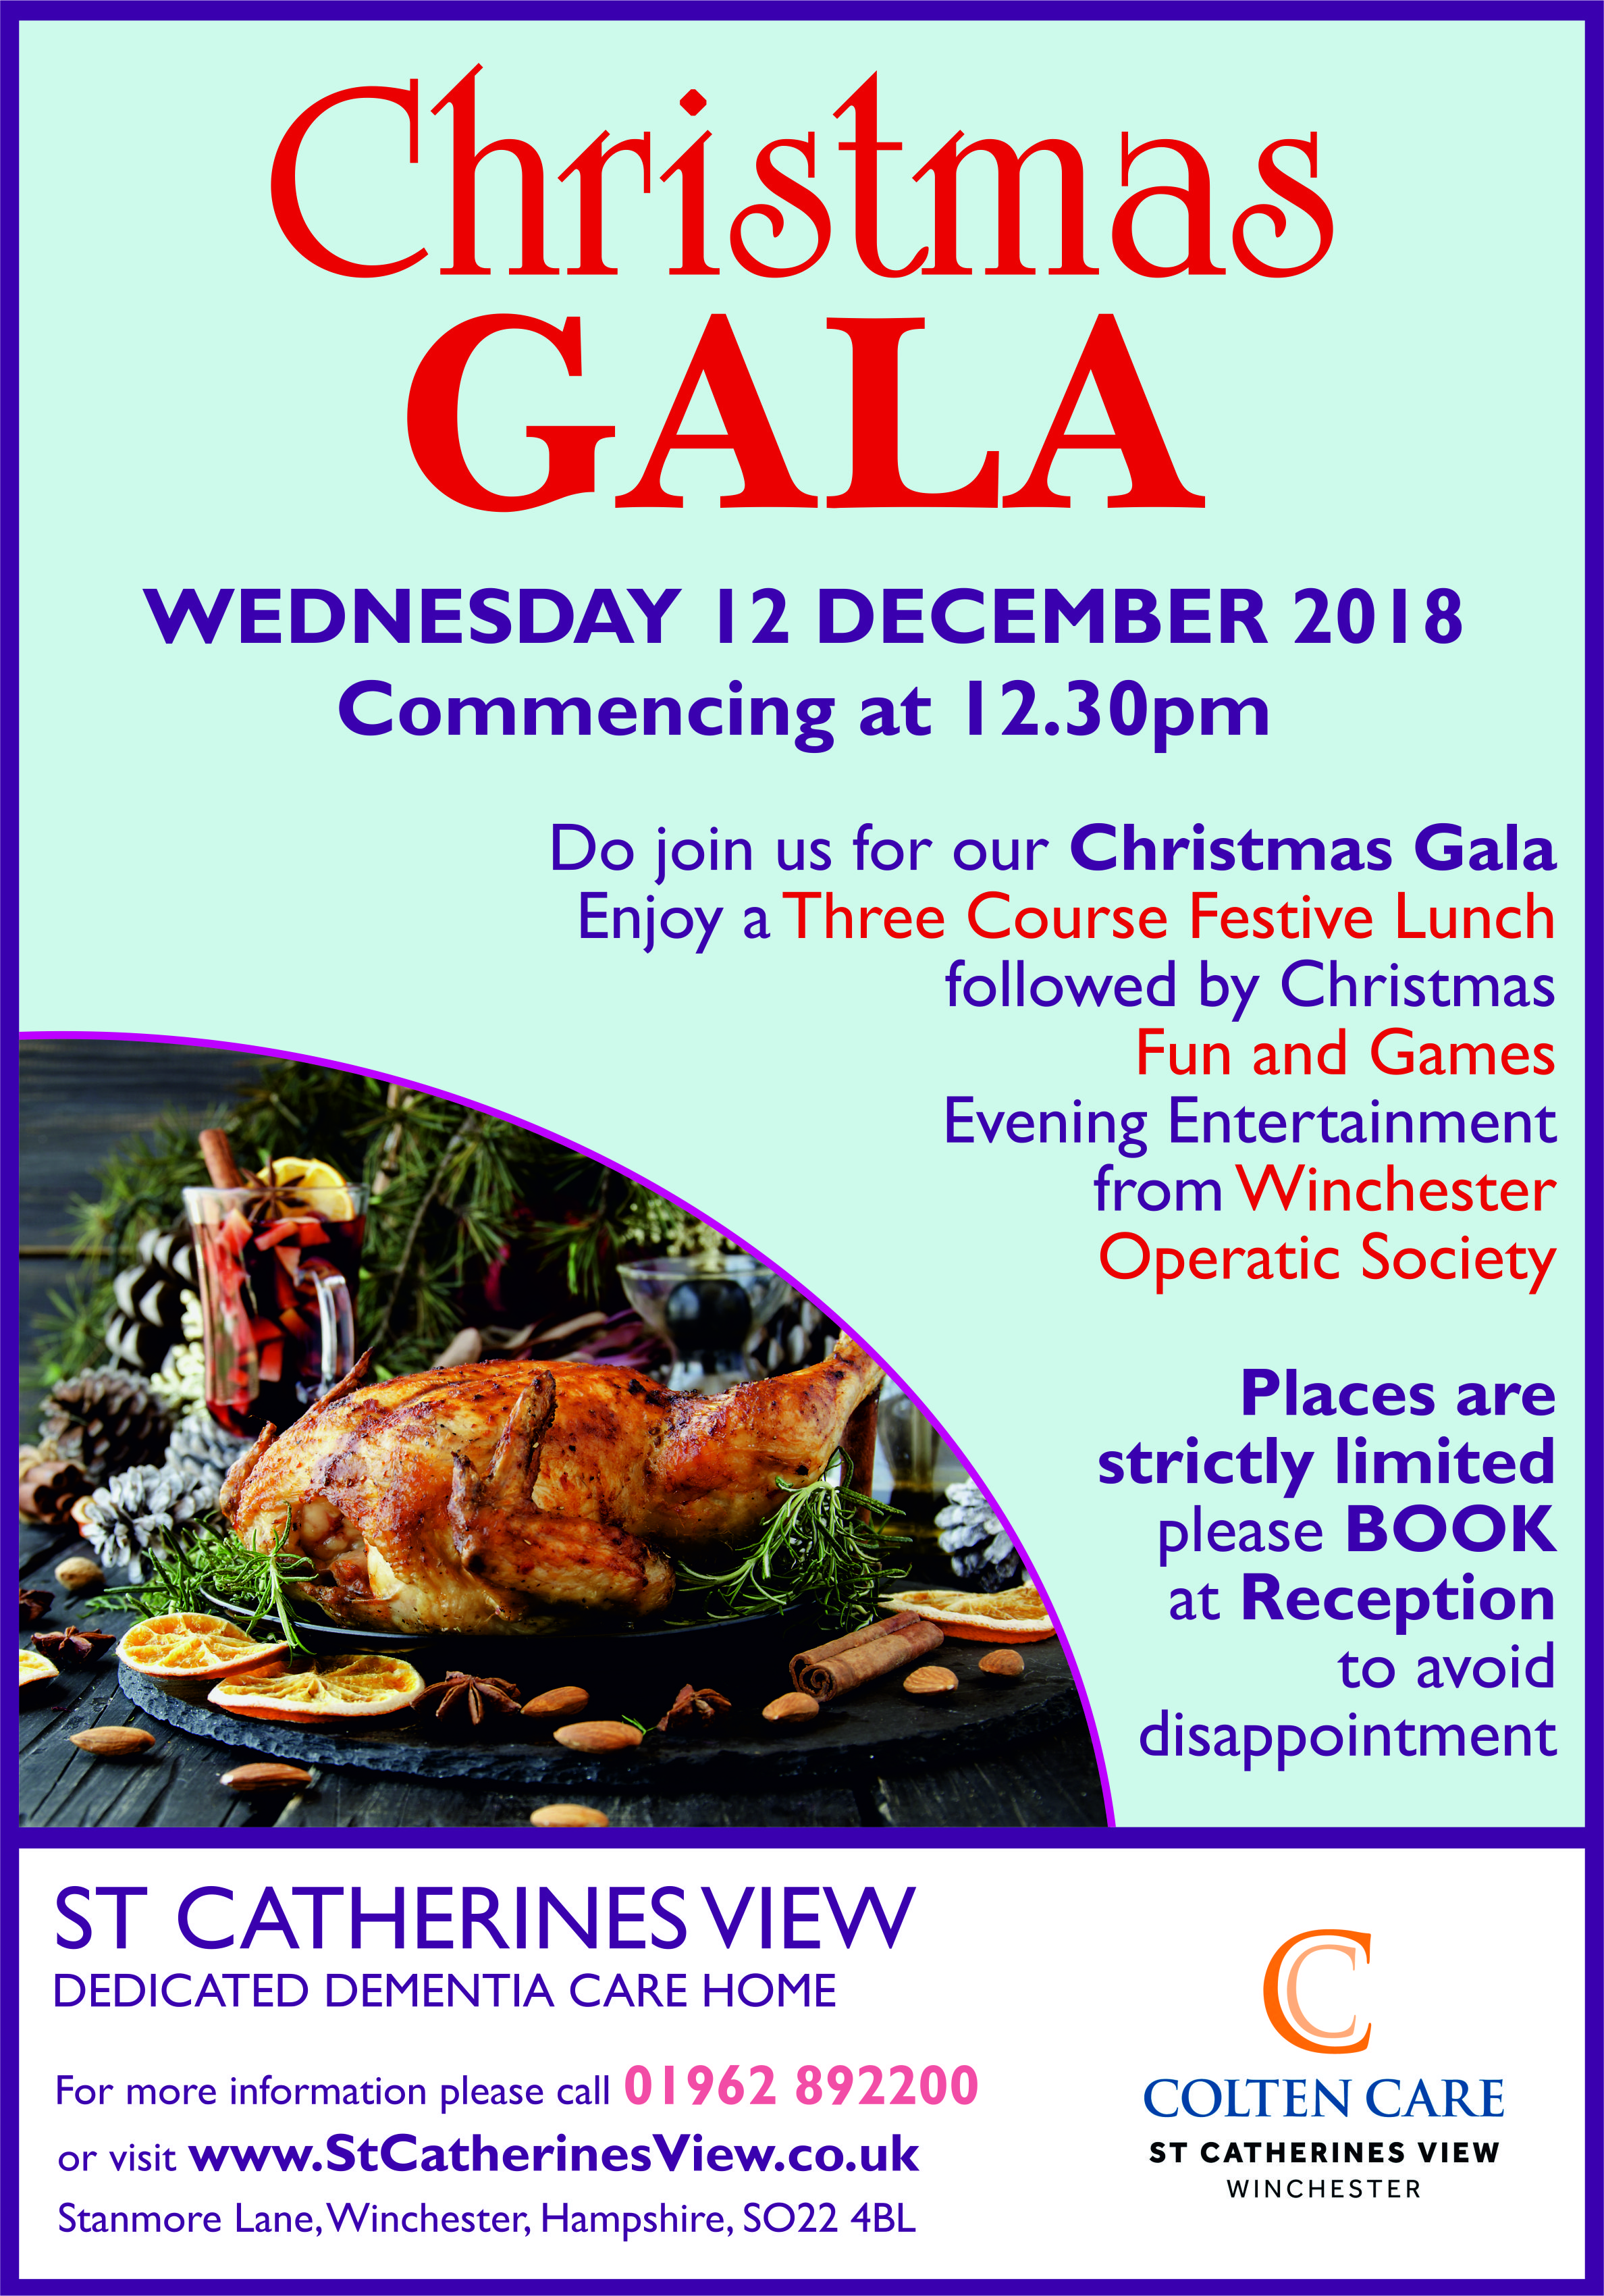 St Catherines View - Christmas Gala Poster 12 Dec - 20 Nov 2018